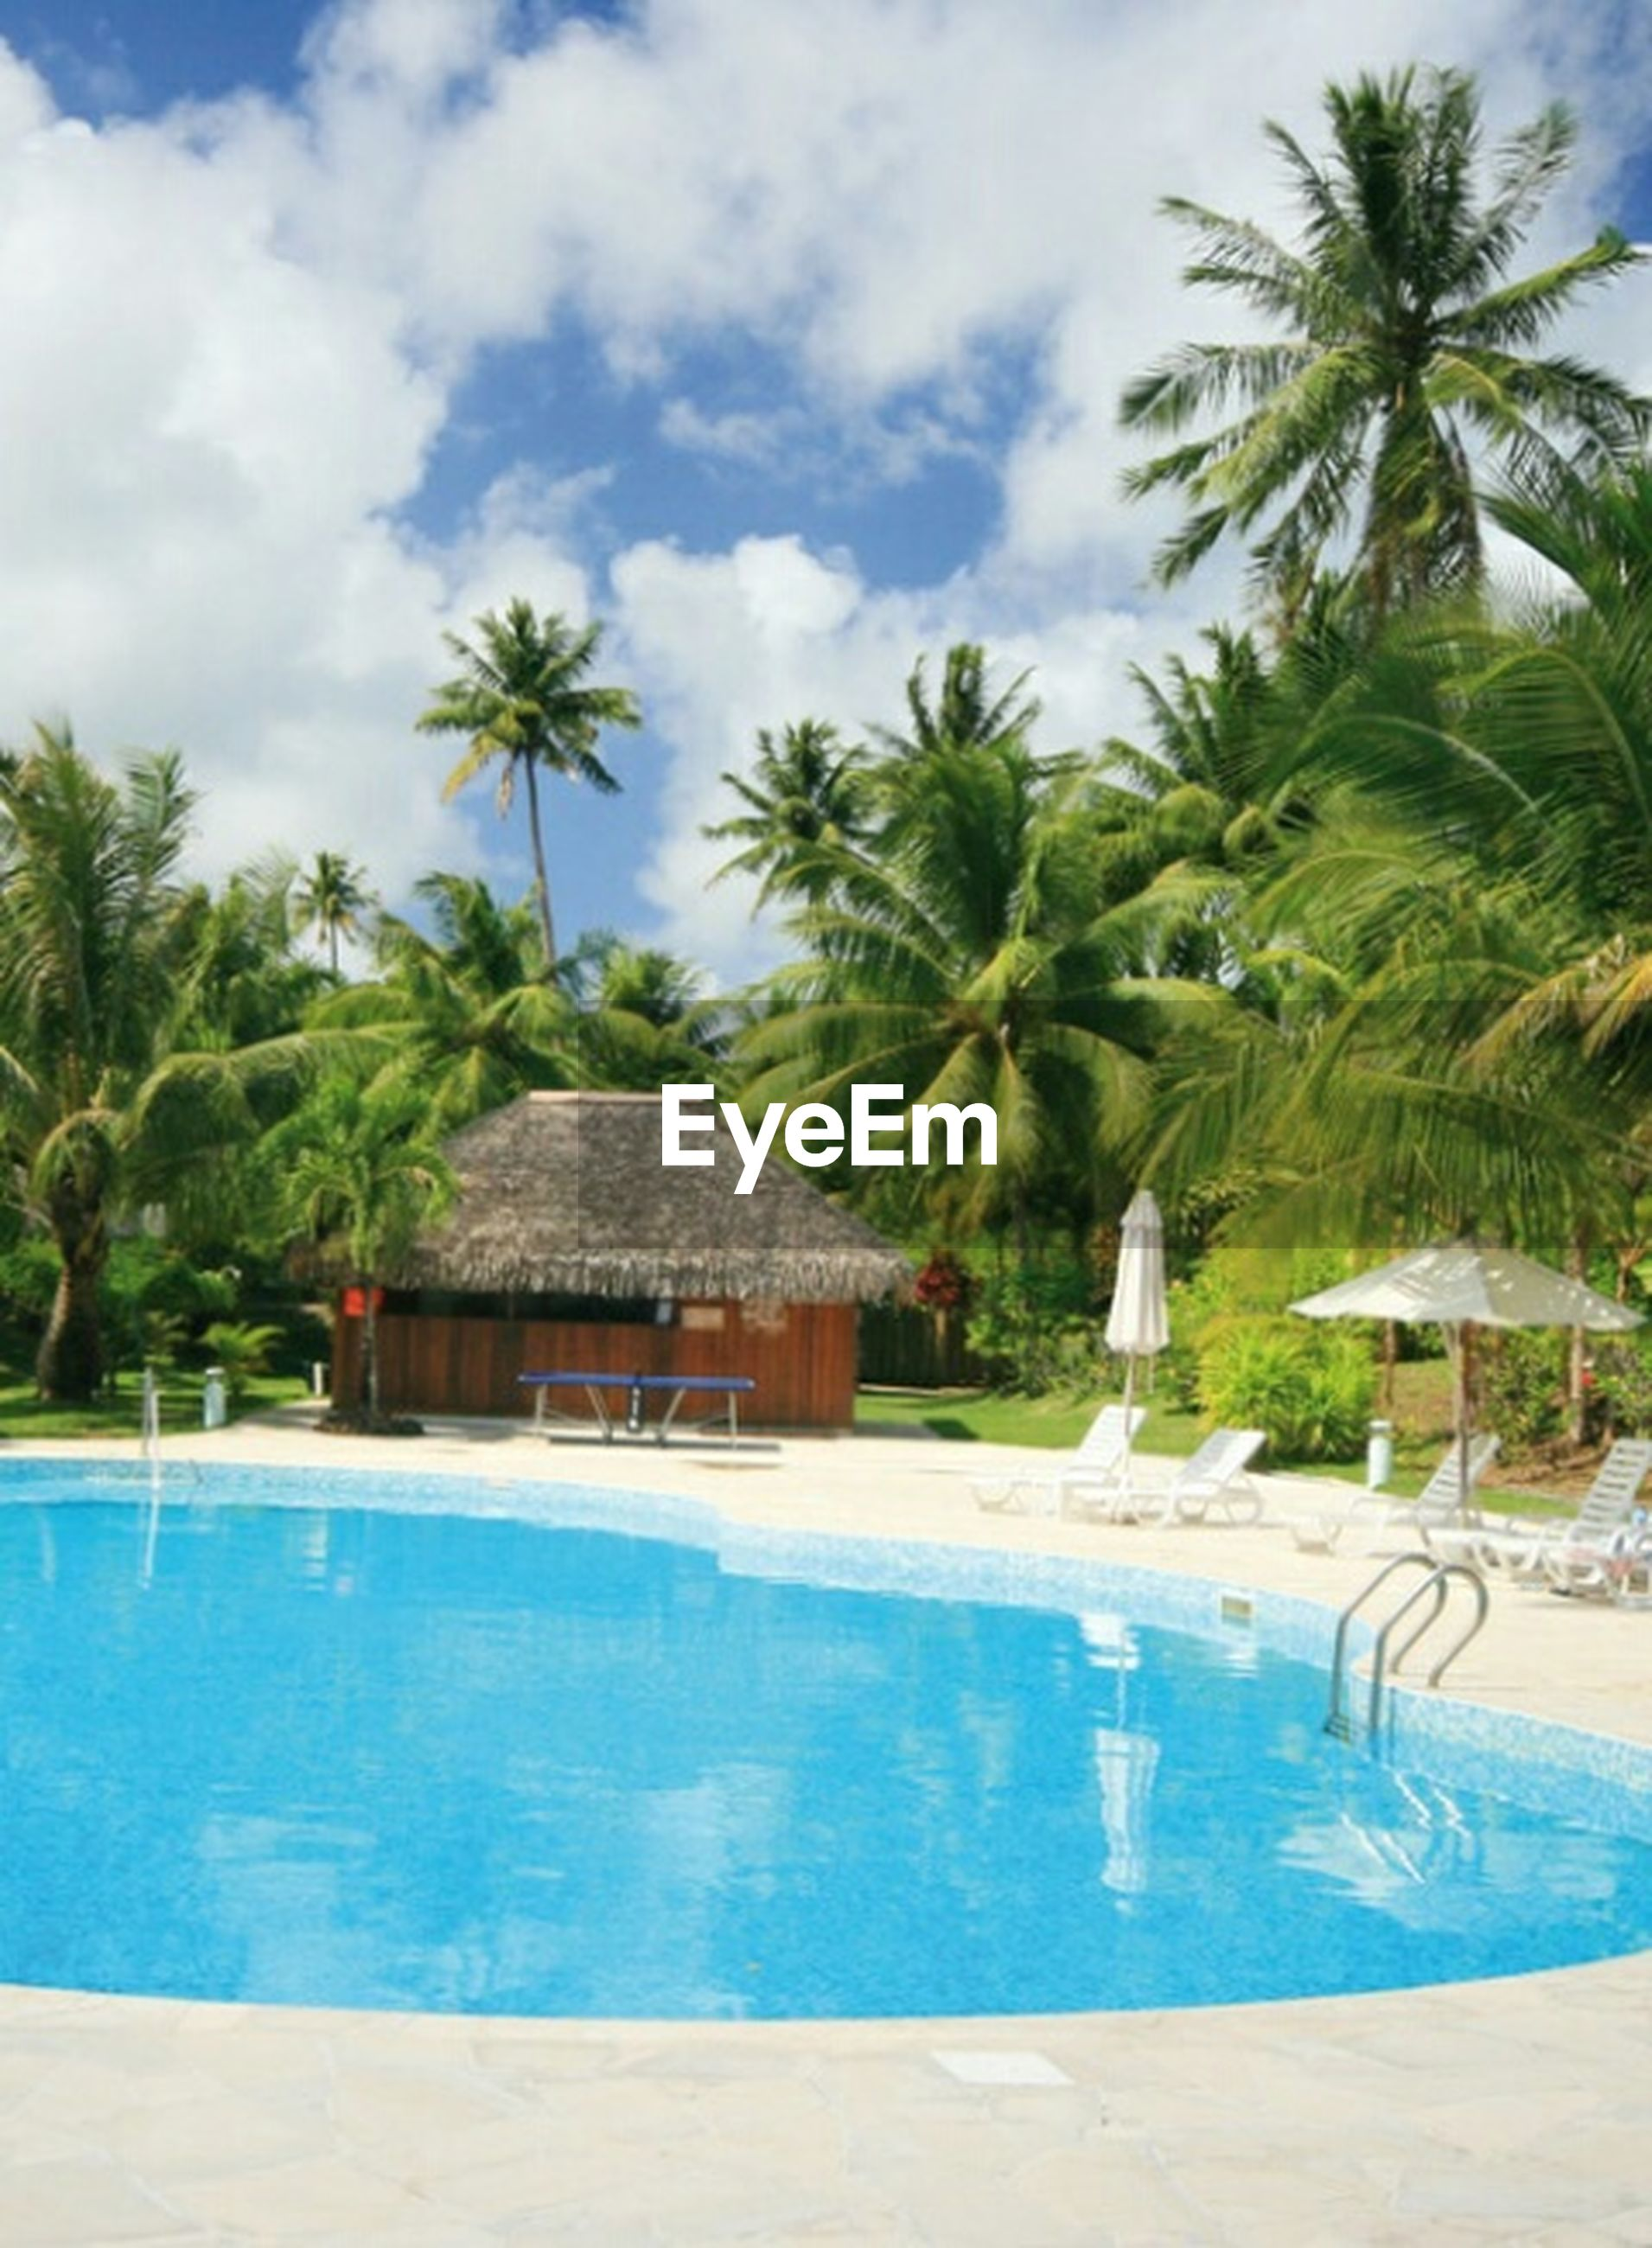 palm tree, water, tree, swimming pool, sky, built structure, beach, sea, architecture, tourist resort, building exterior, cloud - sky, blue, nature, cloud, house, tranquility, thatched roof, beauty in nature, growth